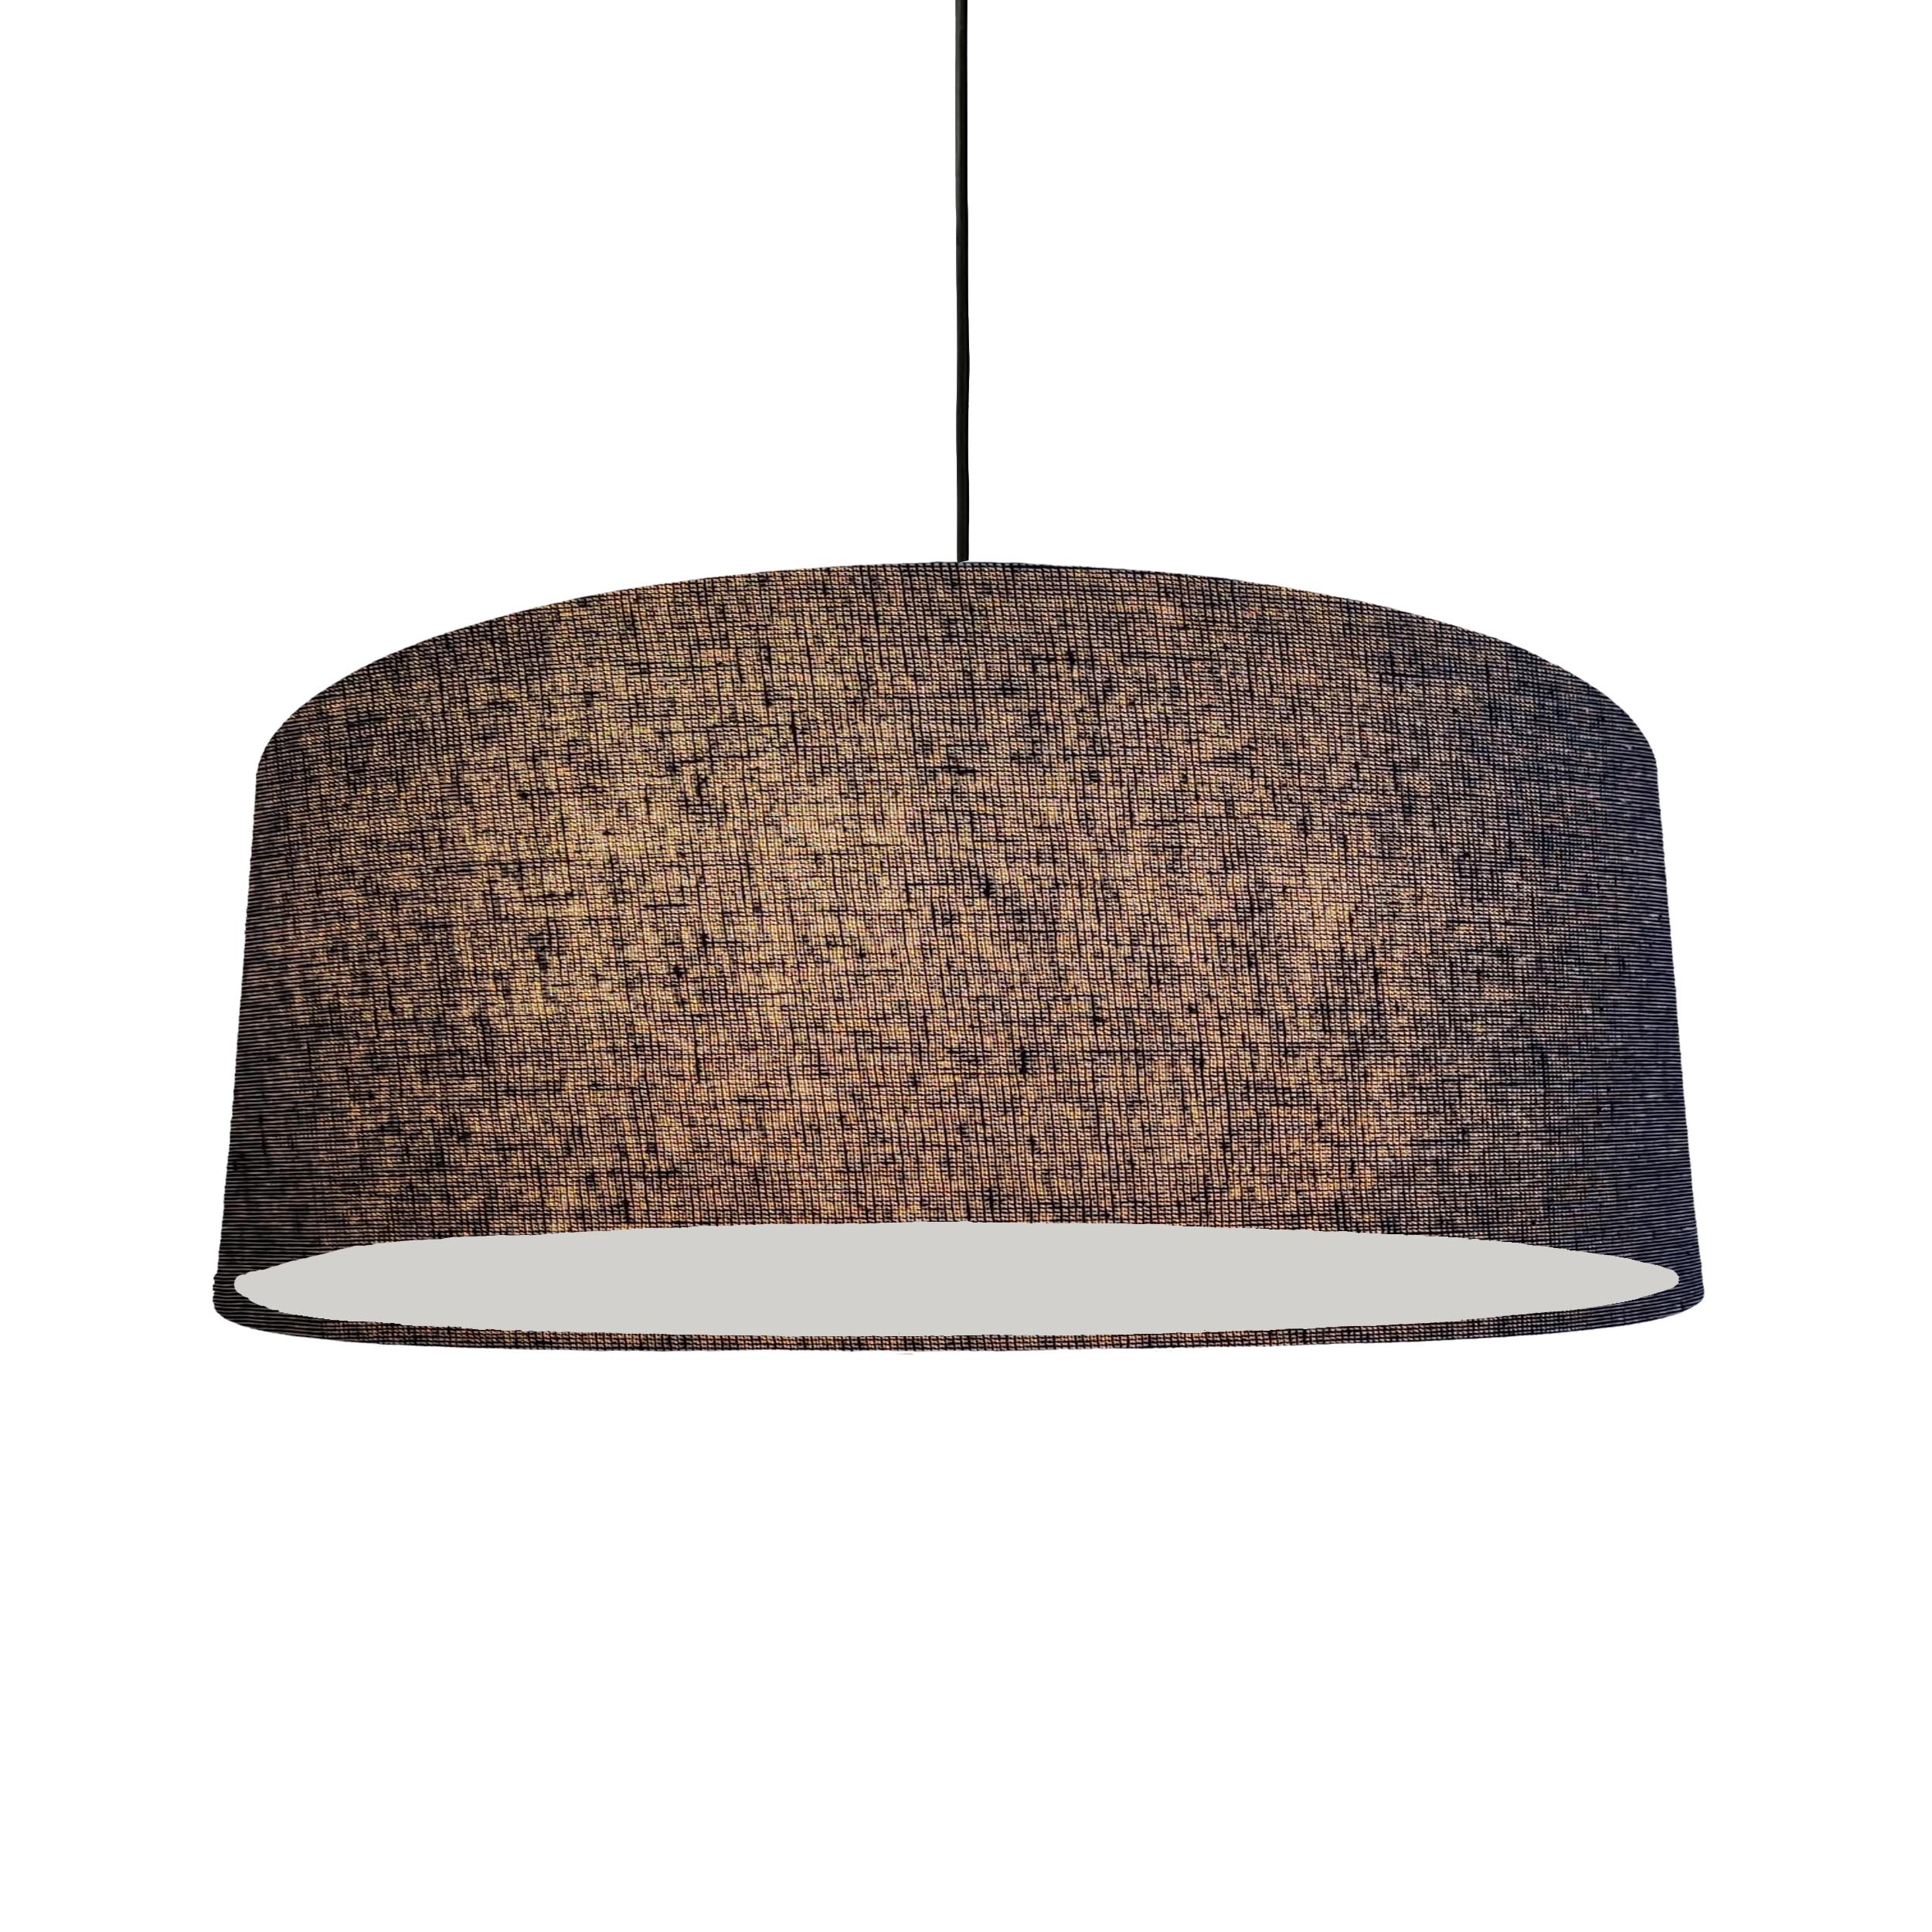 Extra Large Navy Blue Homespun Lampshade with a Linen Weave